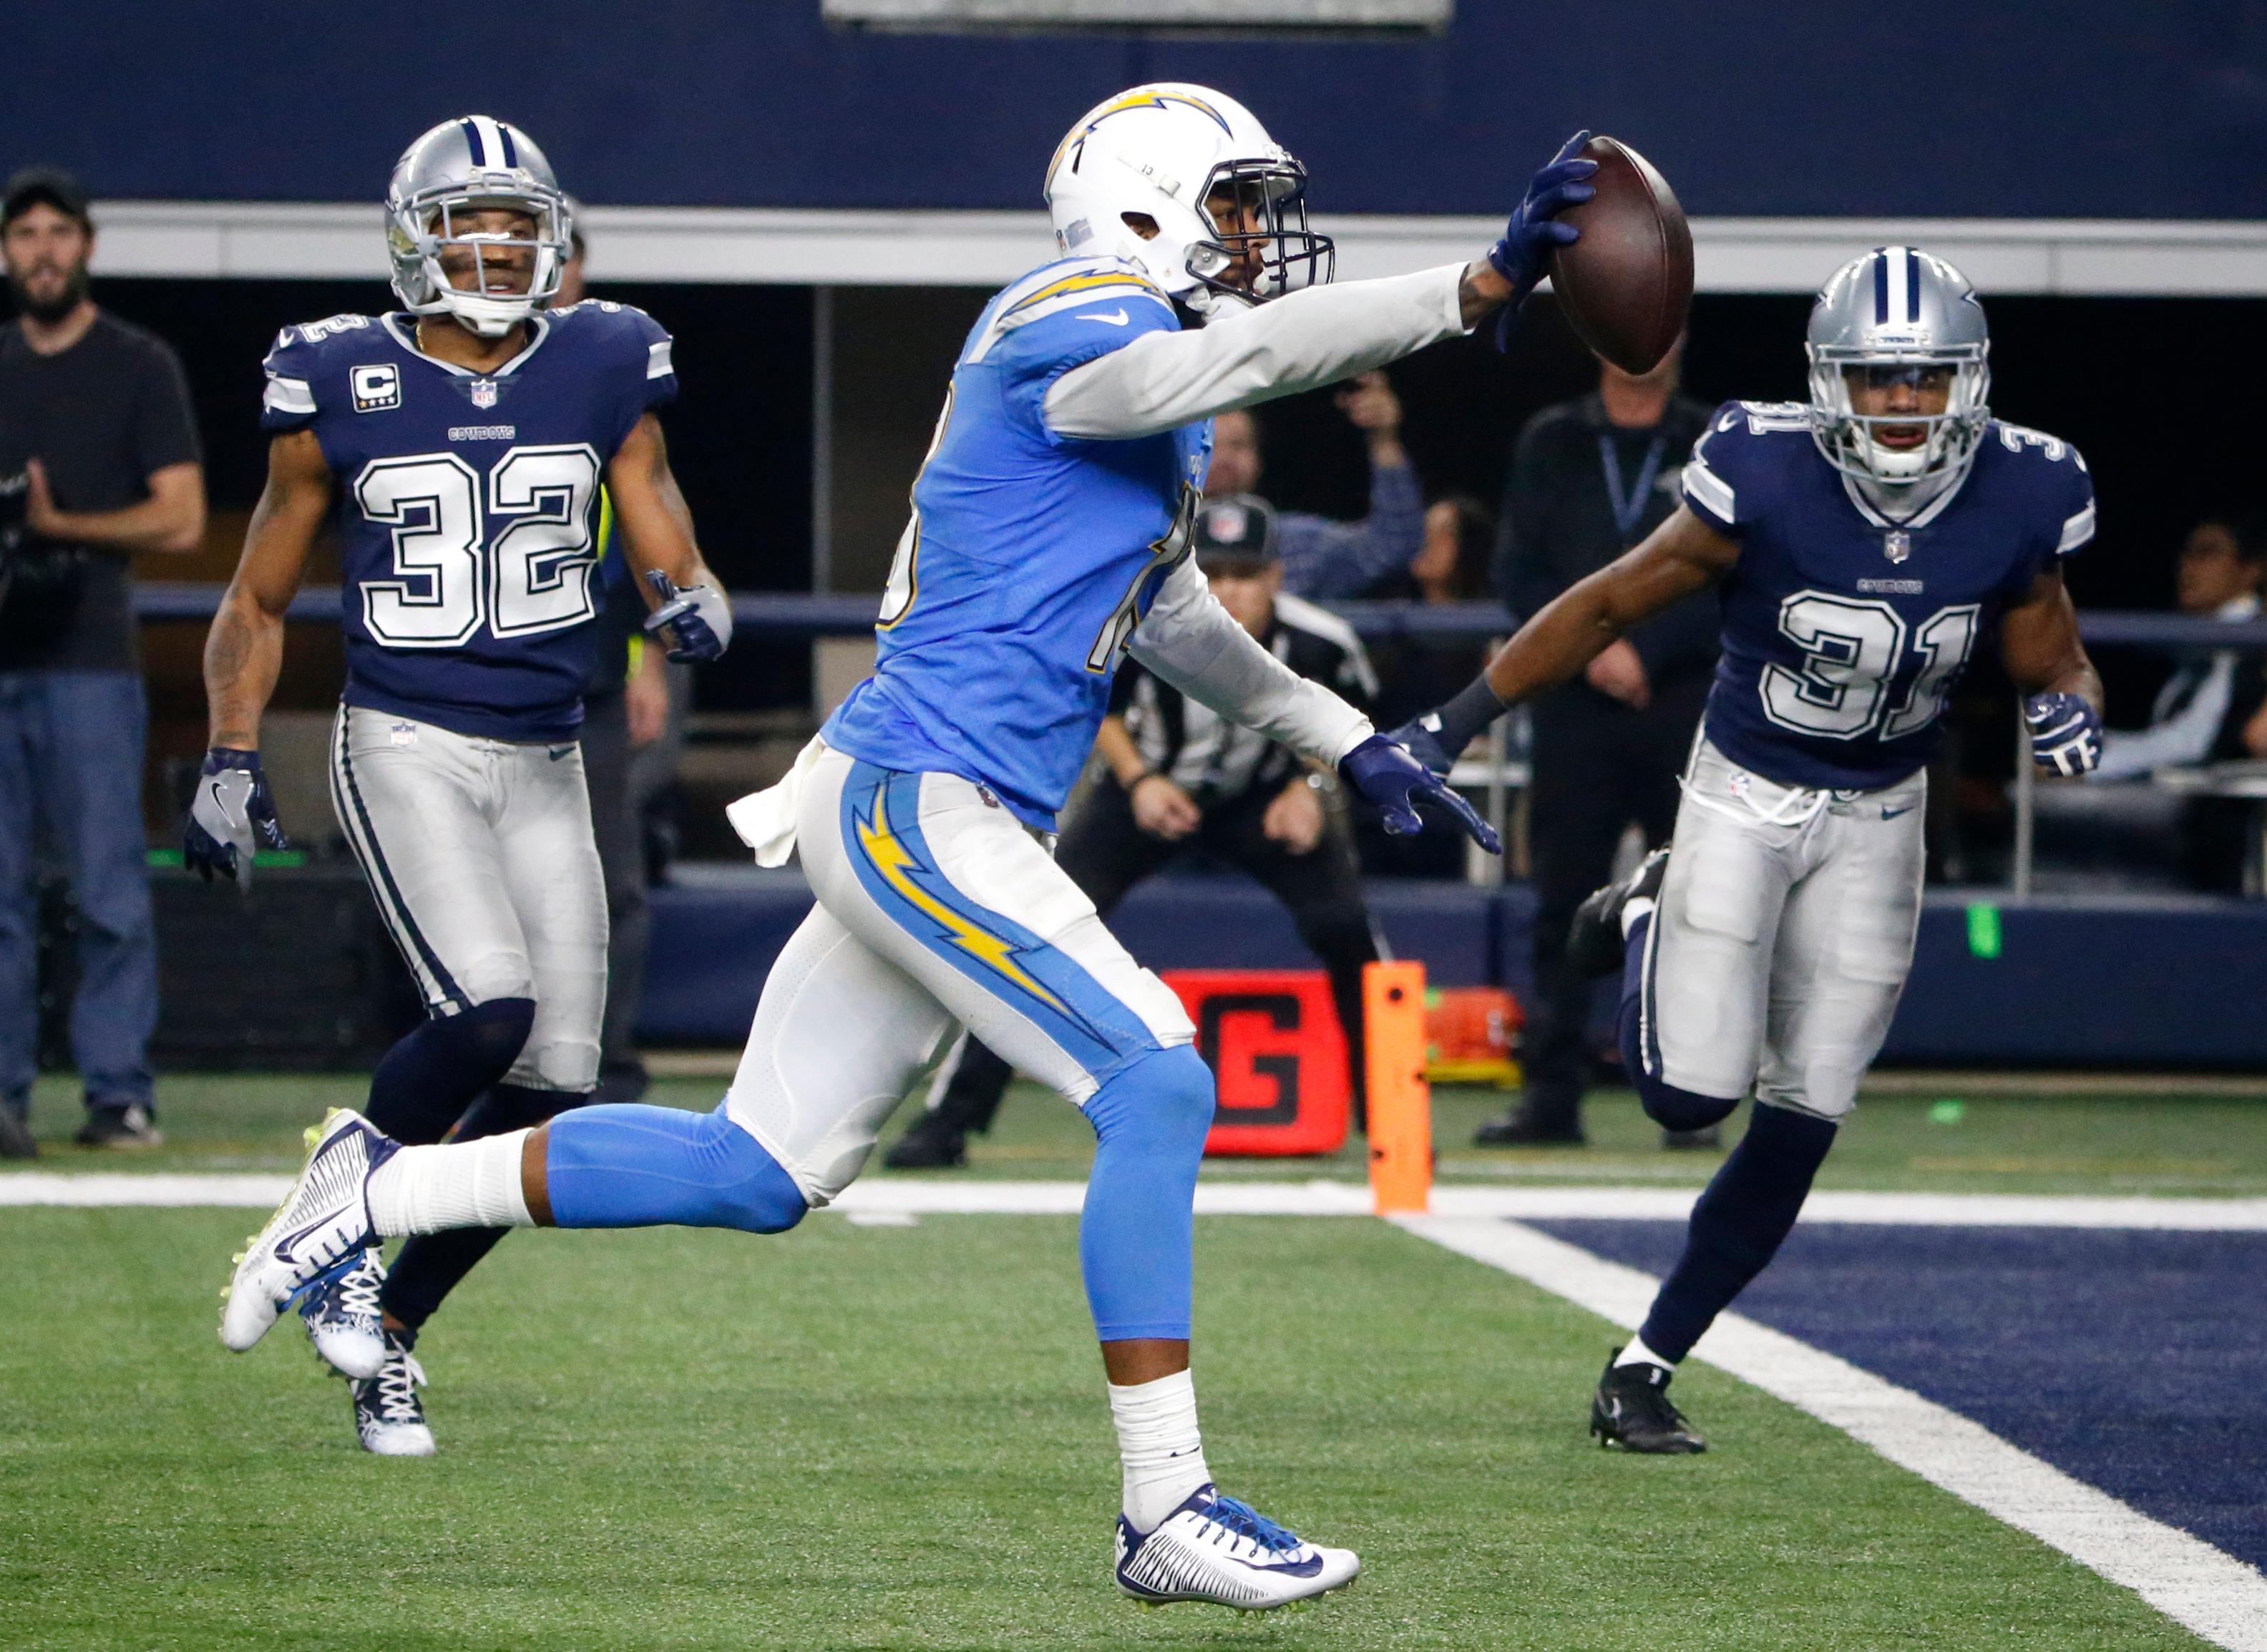 Los Angeles Chargers wide receiver Keenan Allen (13) sprints to the end zoned in front of Dallas Cowboys' Orlando Scandrick (32) and Byron Jones (31) for a touchdown in the second half of an NFL football game, Thursday, Nov. 23, 2017, in Arlington, Texas. (AP Photo/Michael Ainsworth)